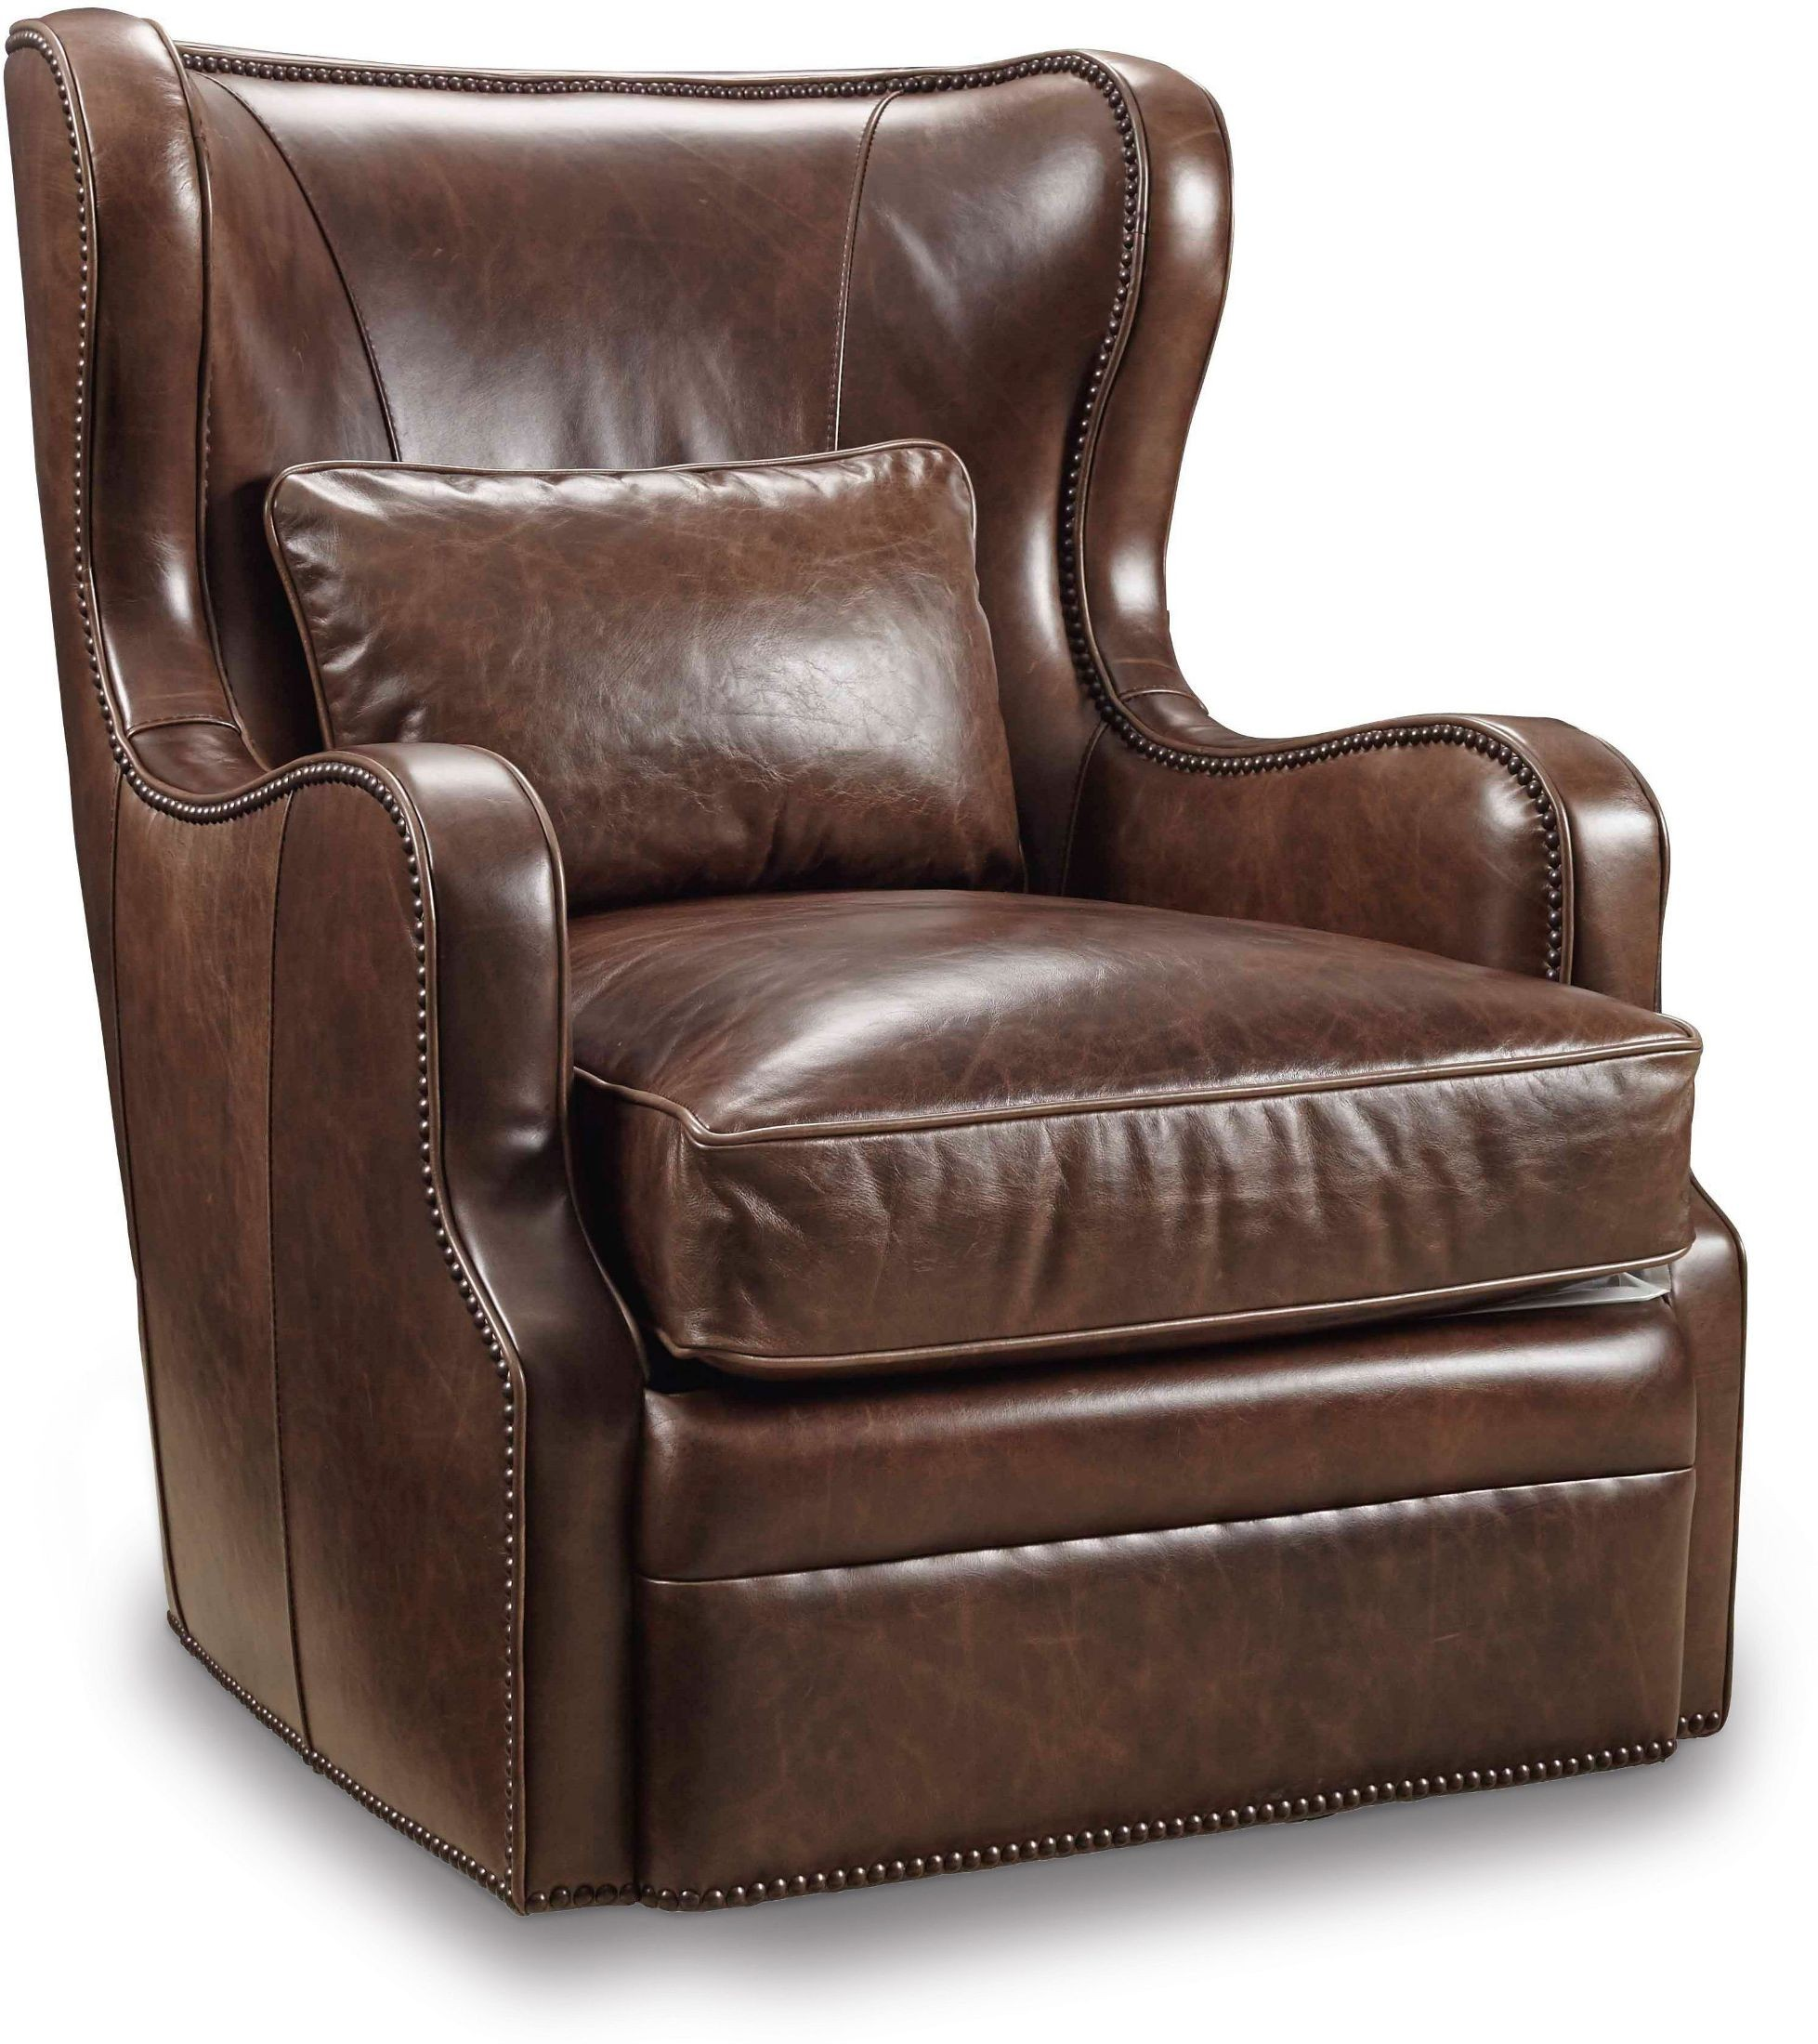 office chair club reviews desk with back support wellington brown leather swivel from hooker